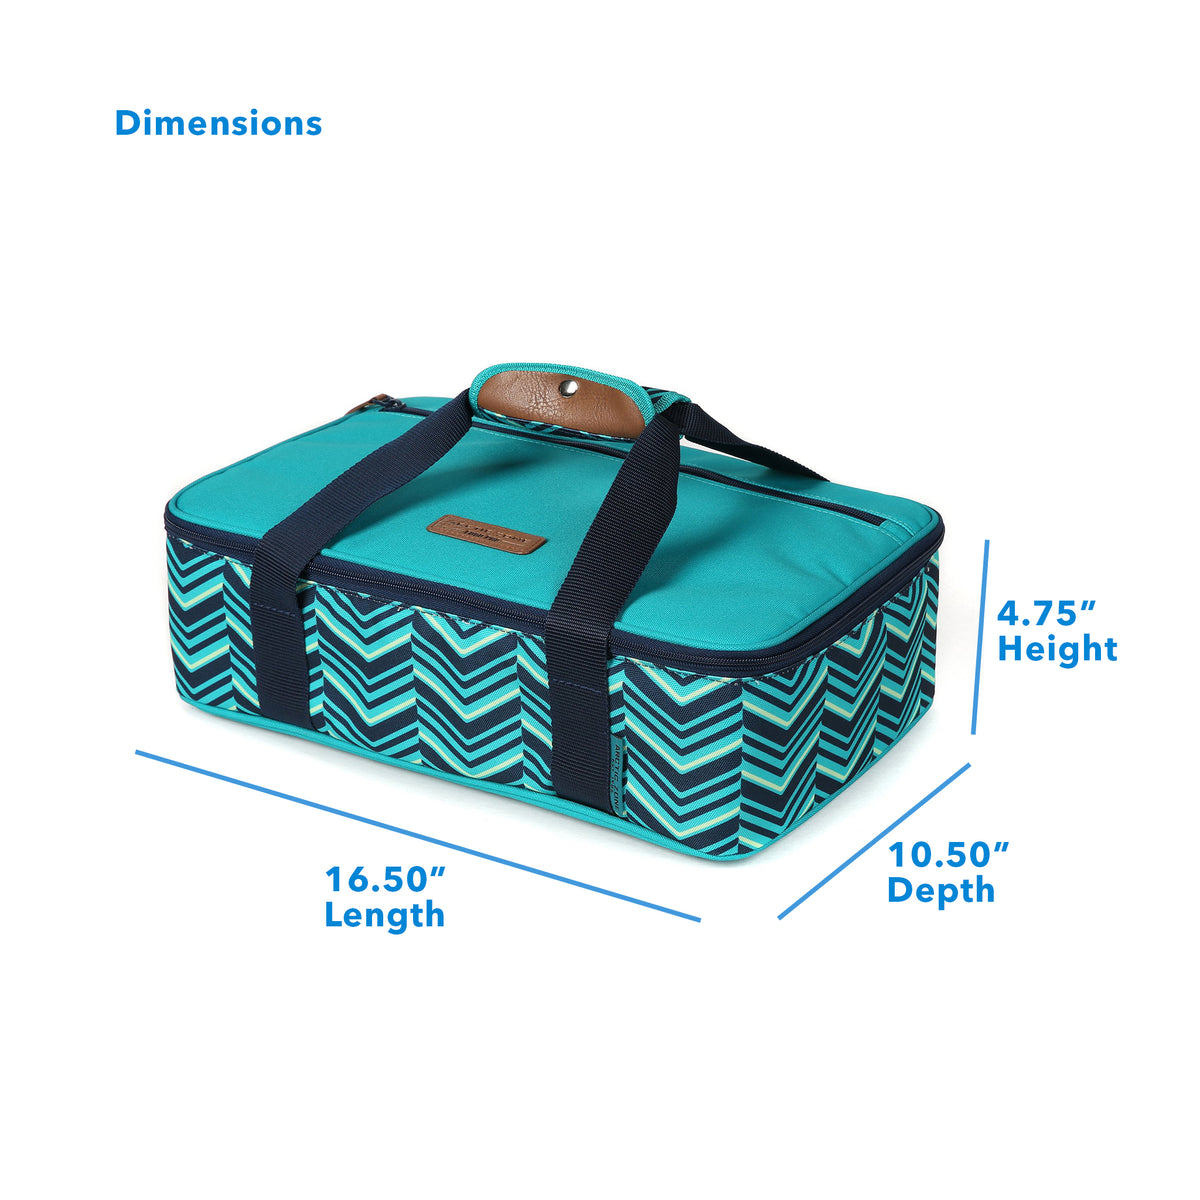 "Arctic Zone® Food Pro Thermal Carrier -Teal - Dimensions: (L x D x H) 16.50"" x 10.50"" x 4.75"""